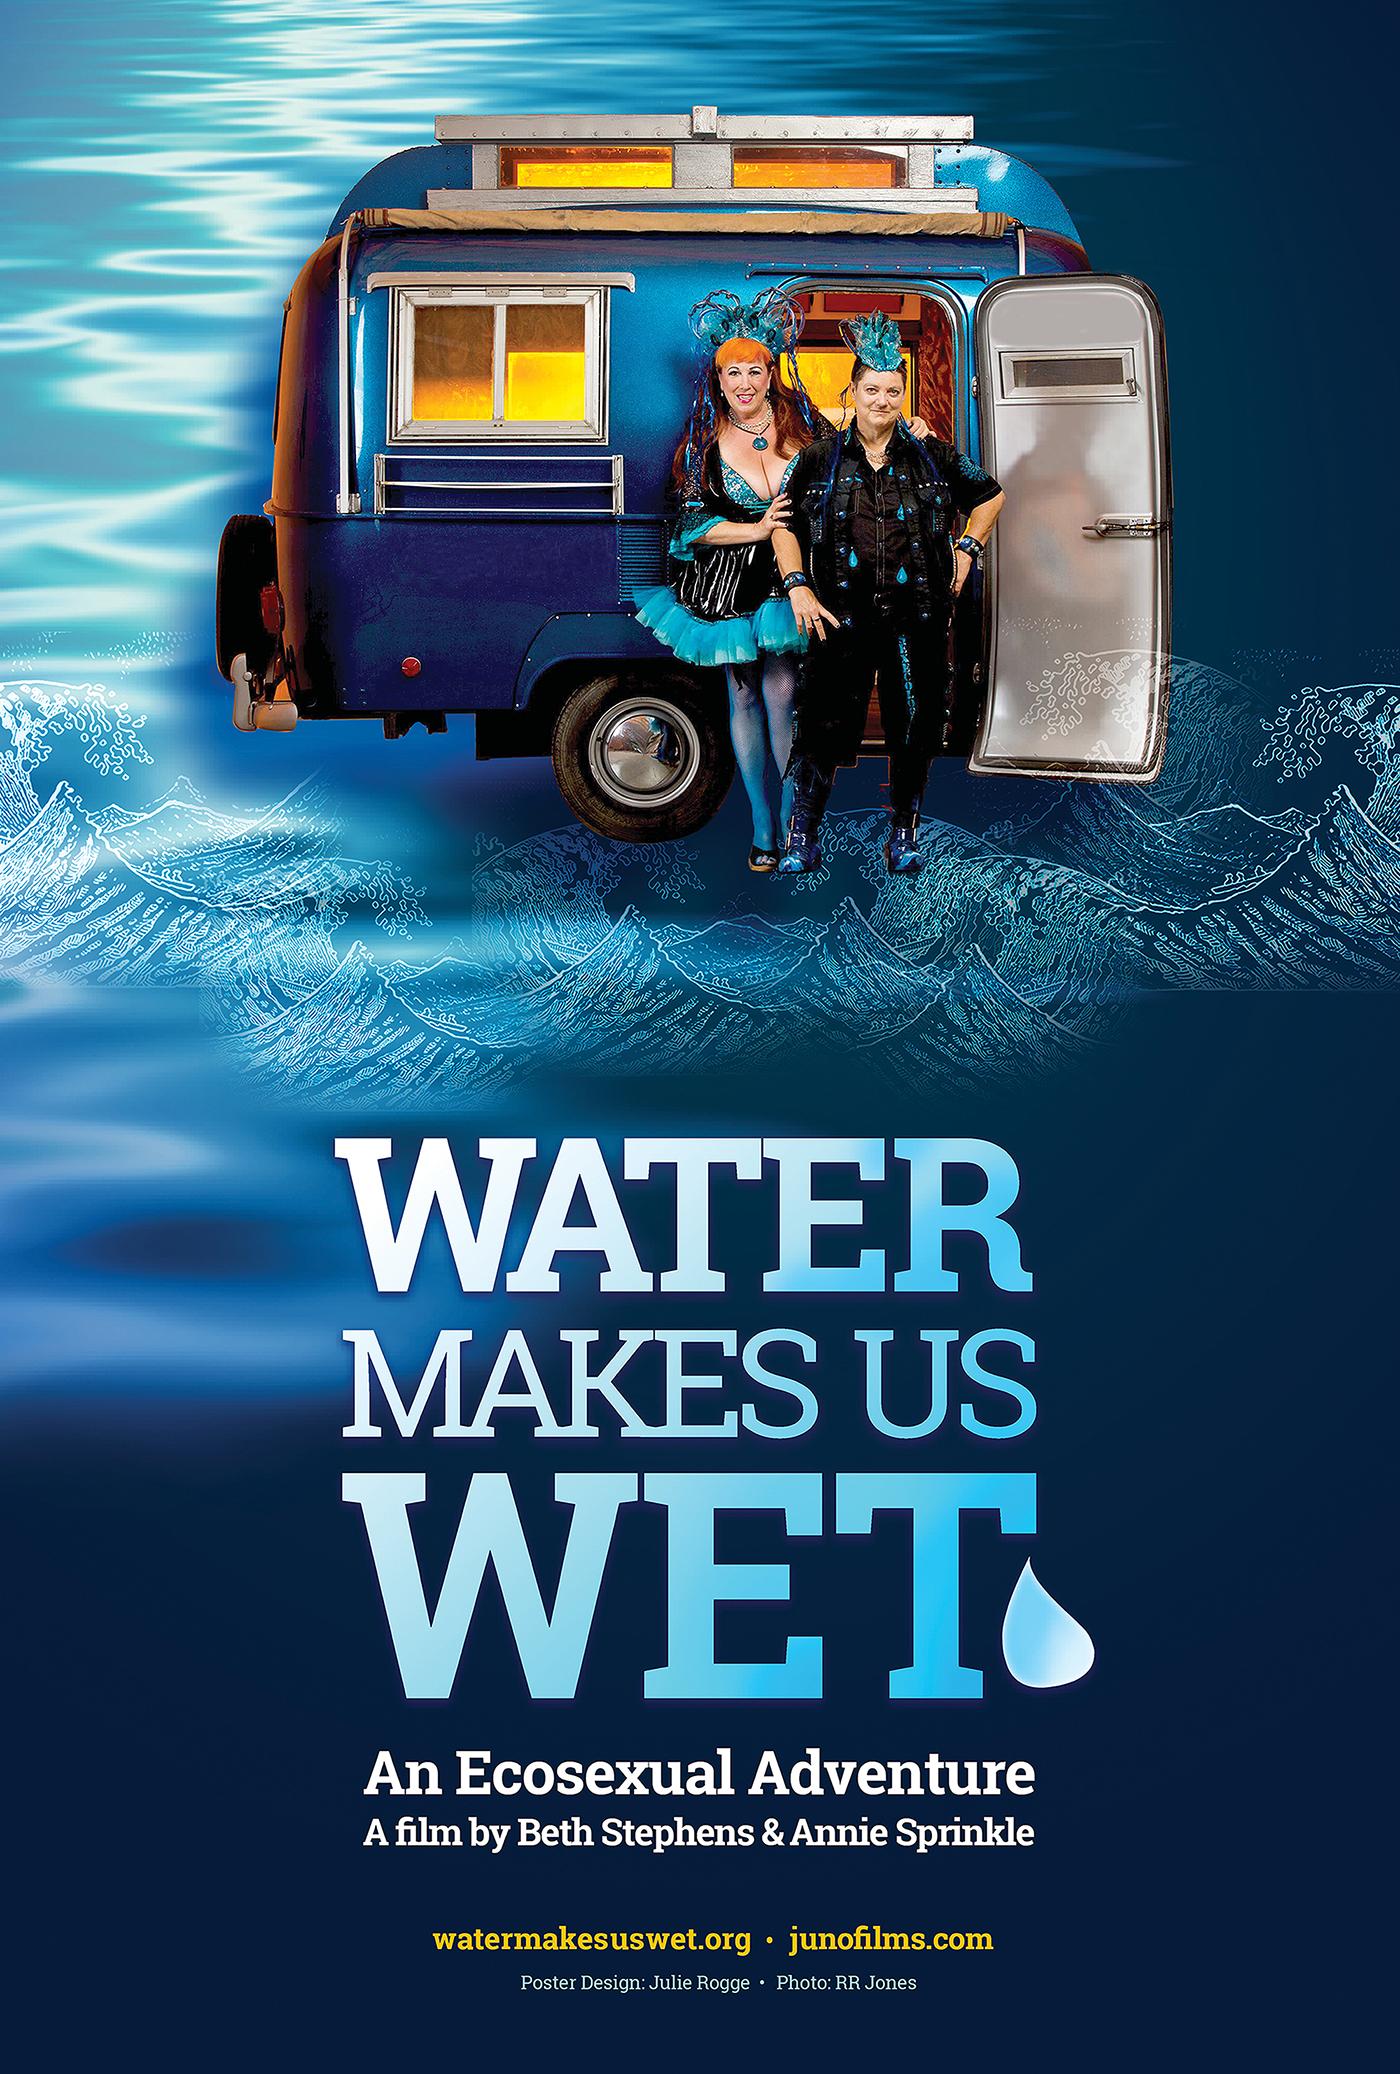 Film poster showing Beth Stephens and Annie Sprinkle and water